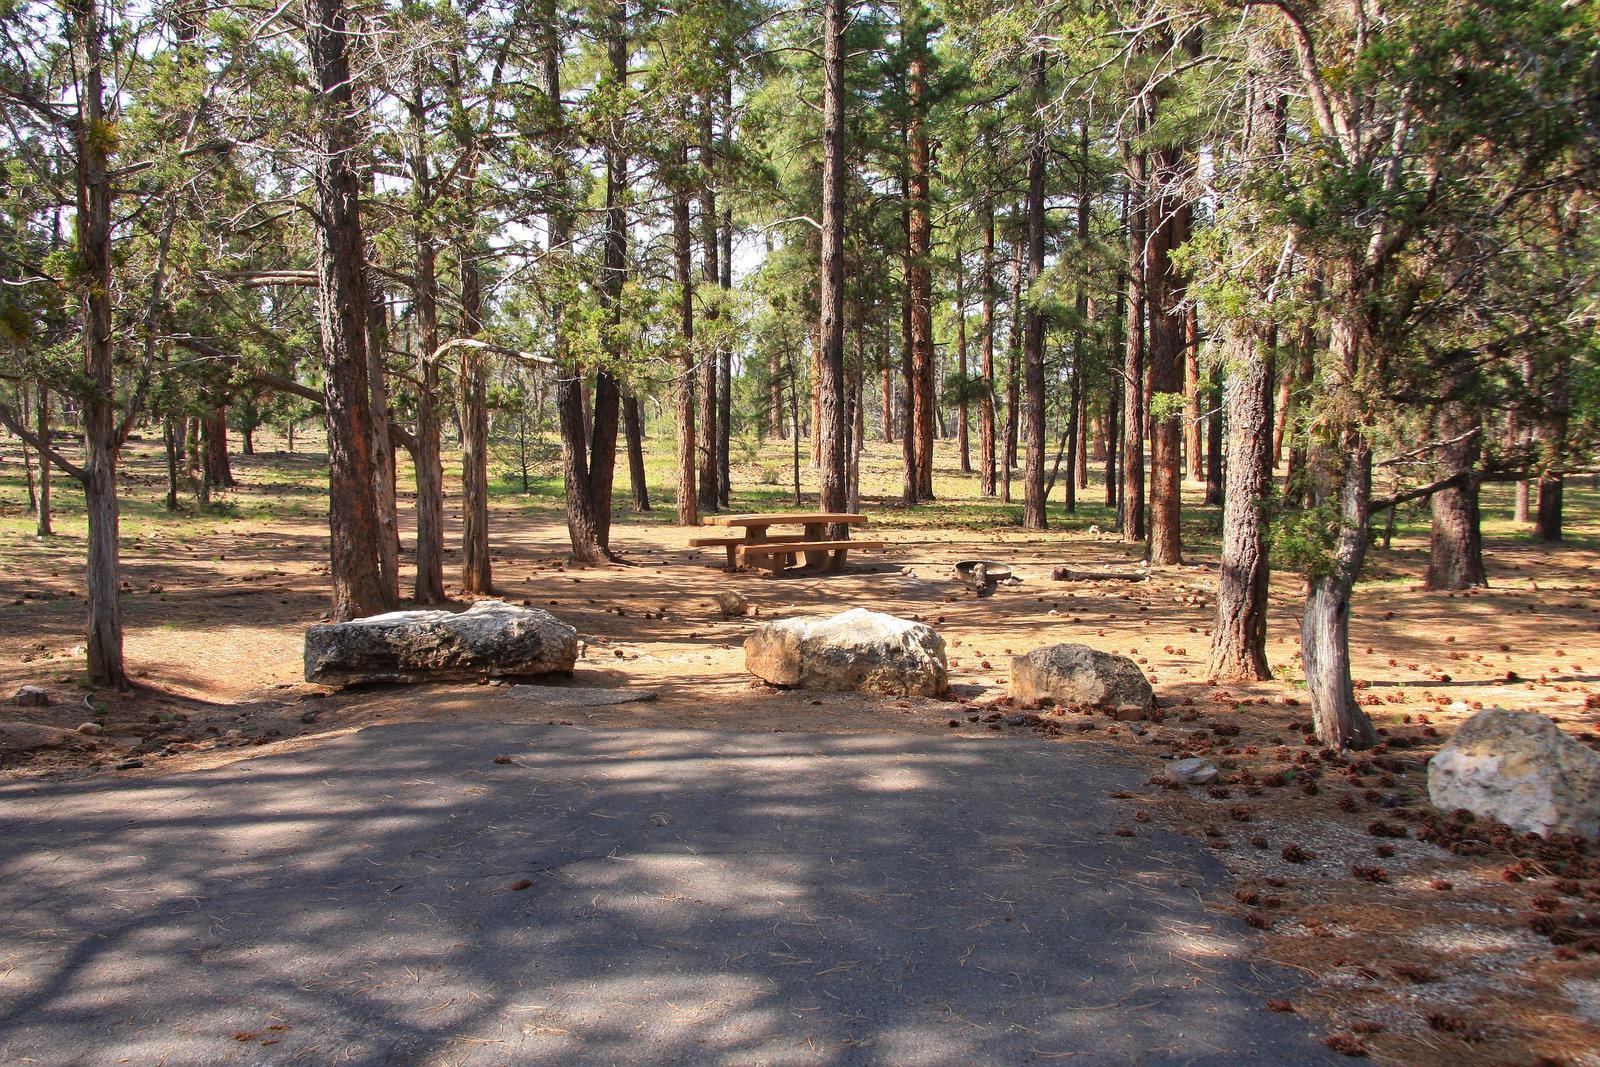 Picnic table, fire pit, and parking spot, Mather CampgroundPicnic table, fire pit, and parking spot for Juniper Loop 146, Mather Campground